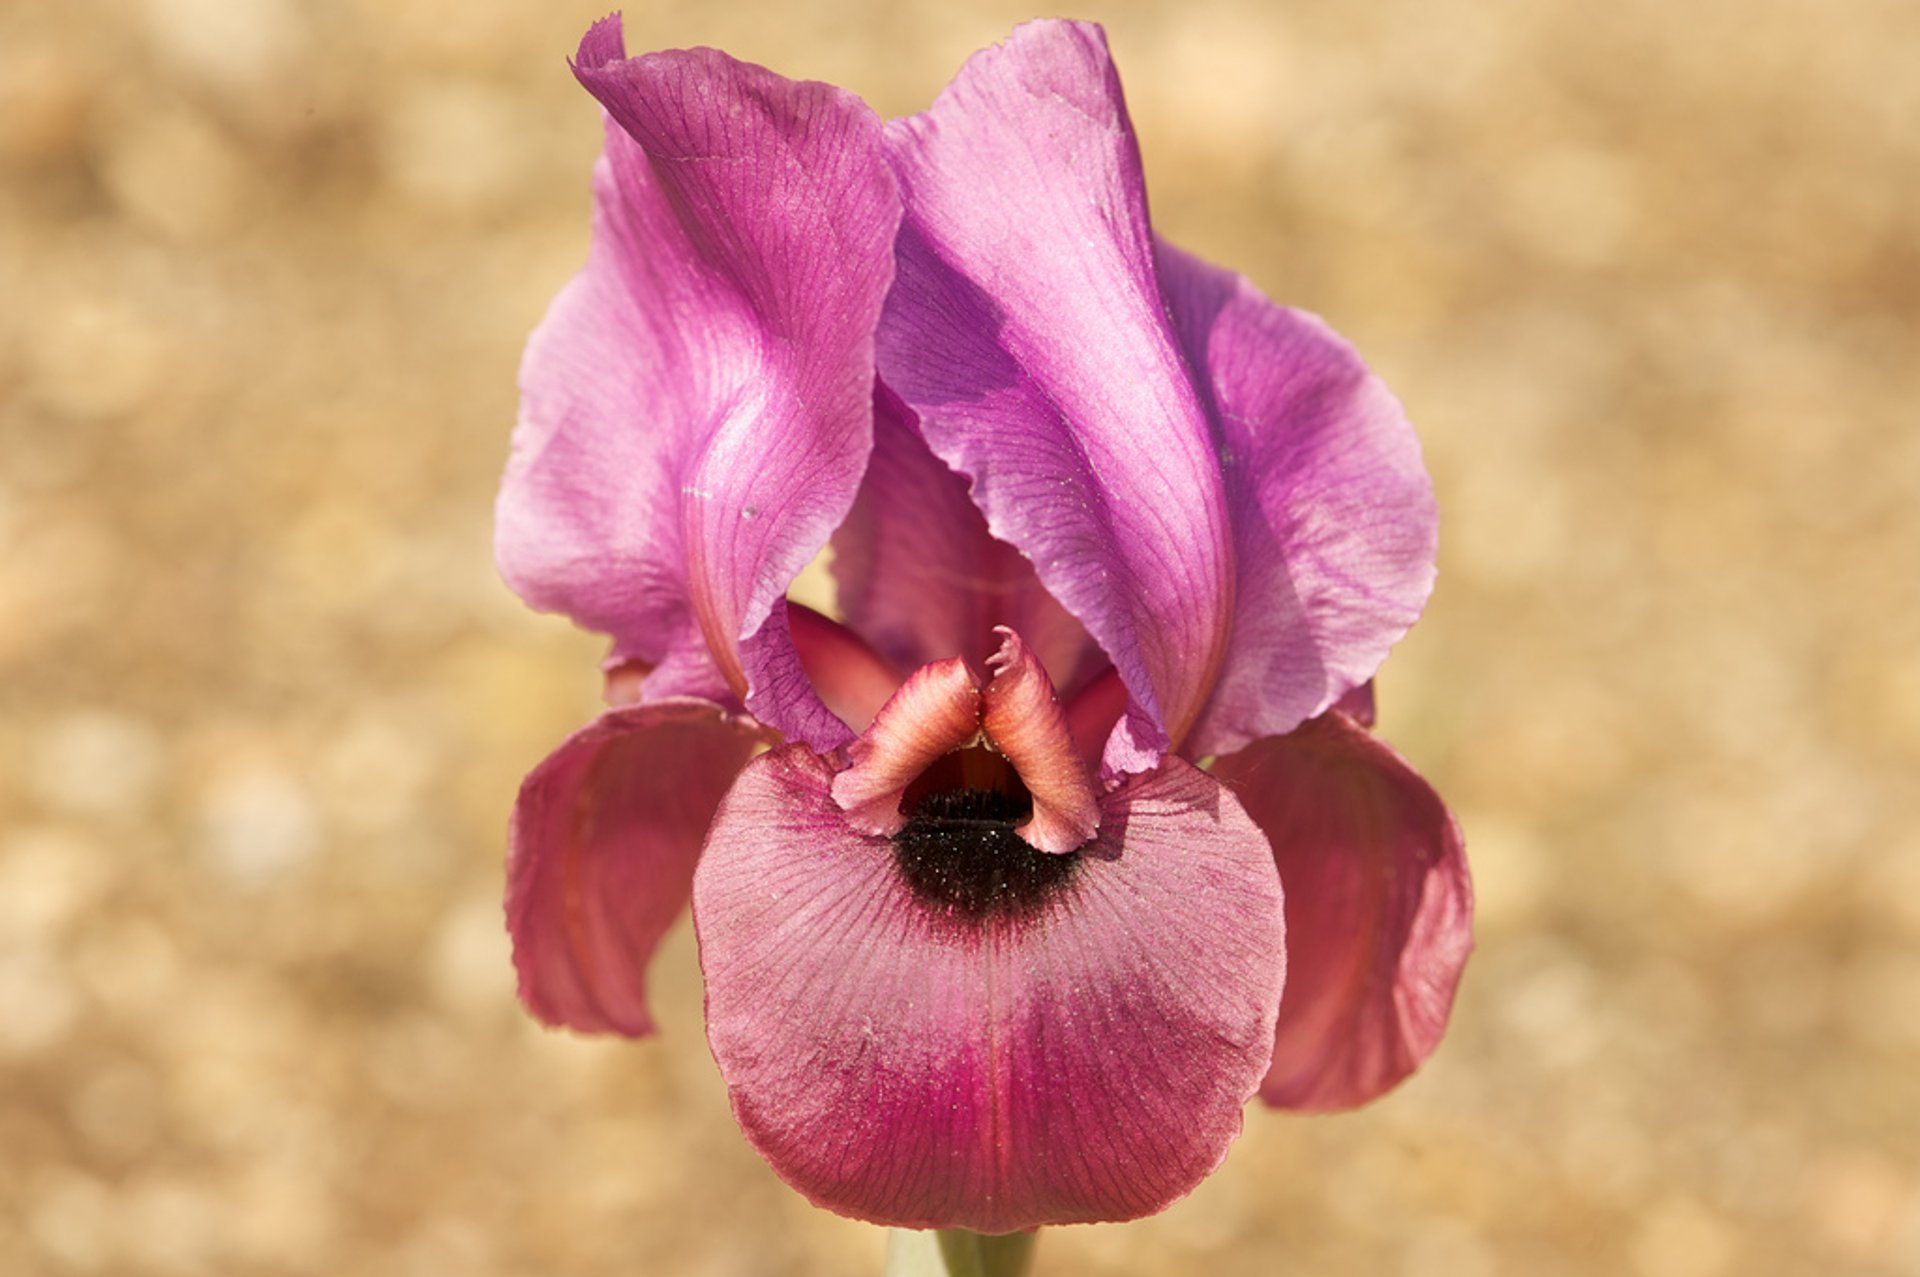 Best time for Negev Iris in Bloom in Israel 2020